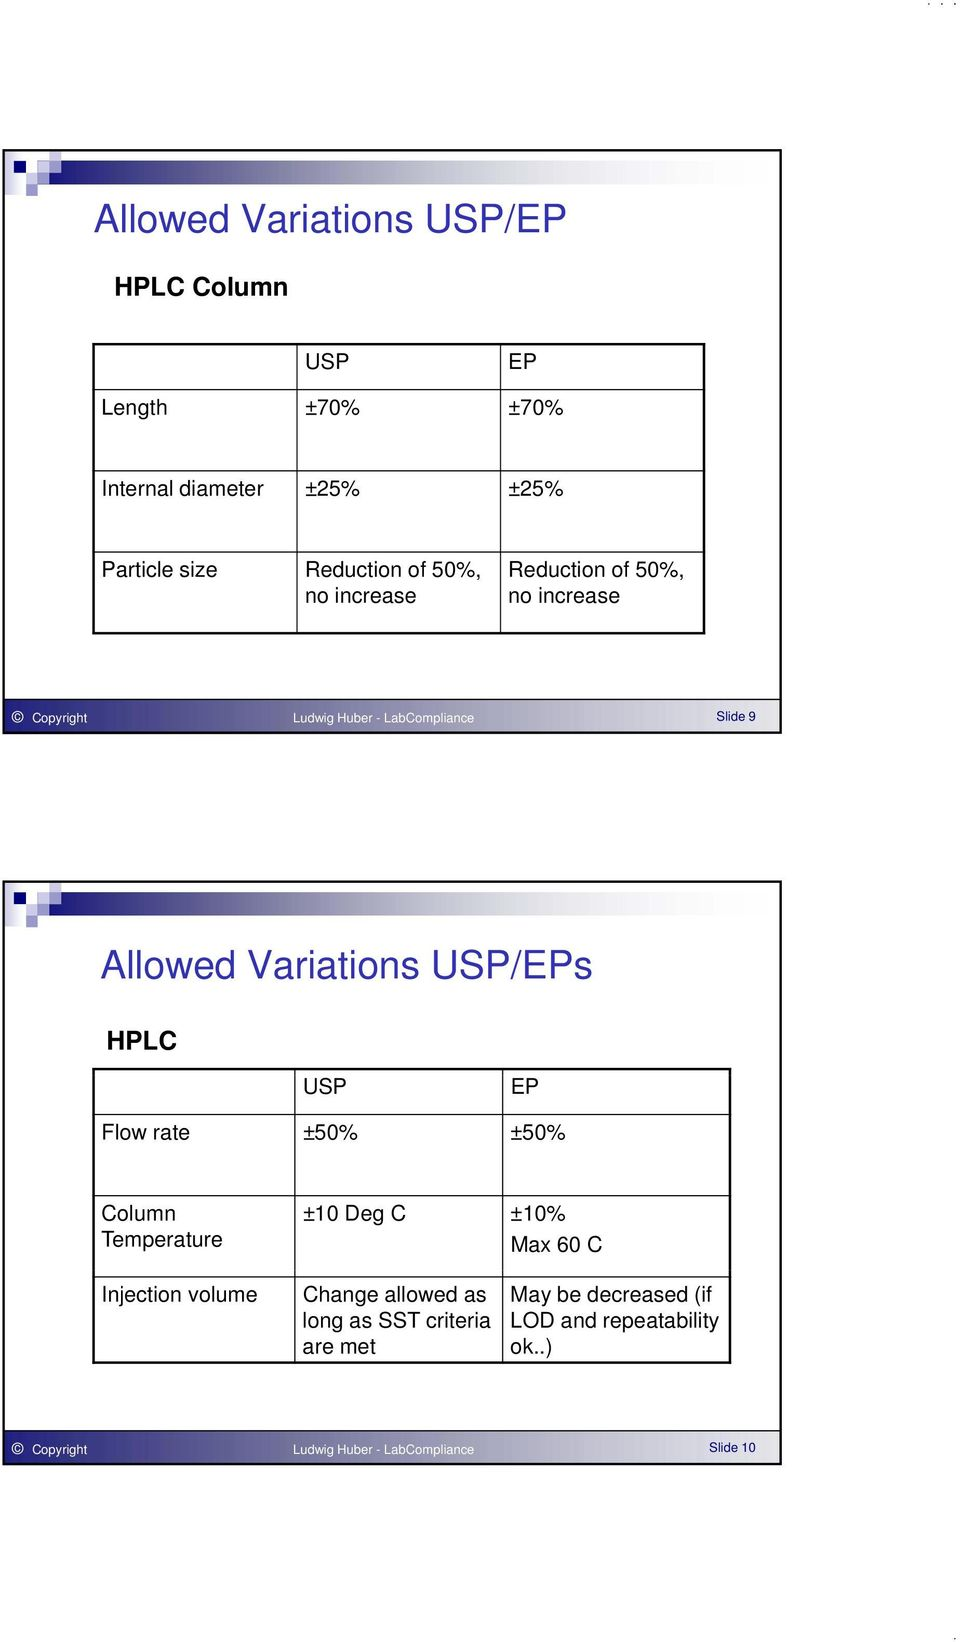 USP/EPs HPLC USP EP Flow rate ±50% ±50% Column Temperature ±10 Deg C ±10% Max 60 C Injection volume Change allowed as